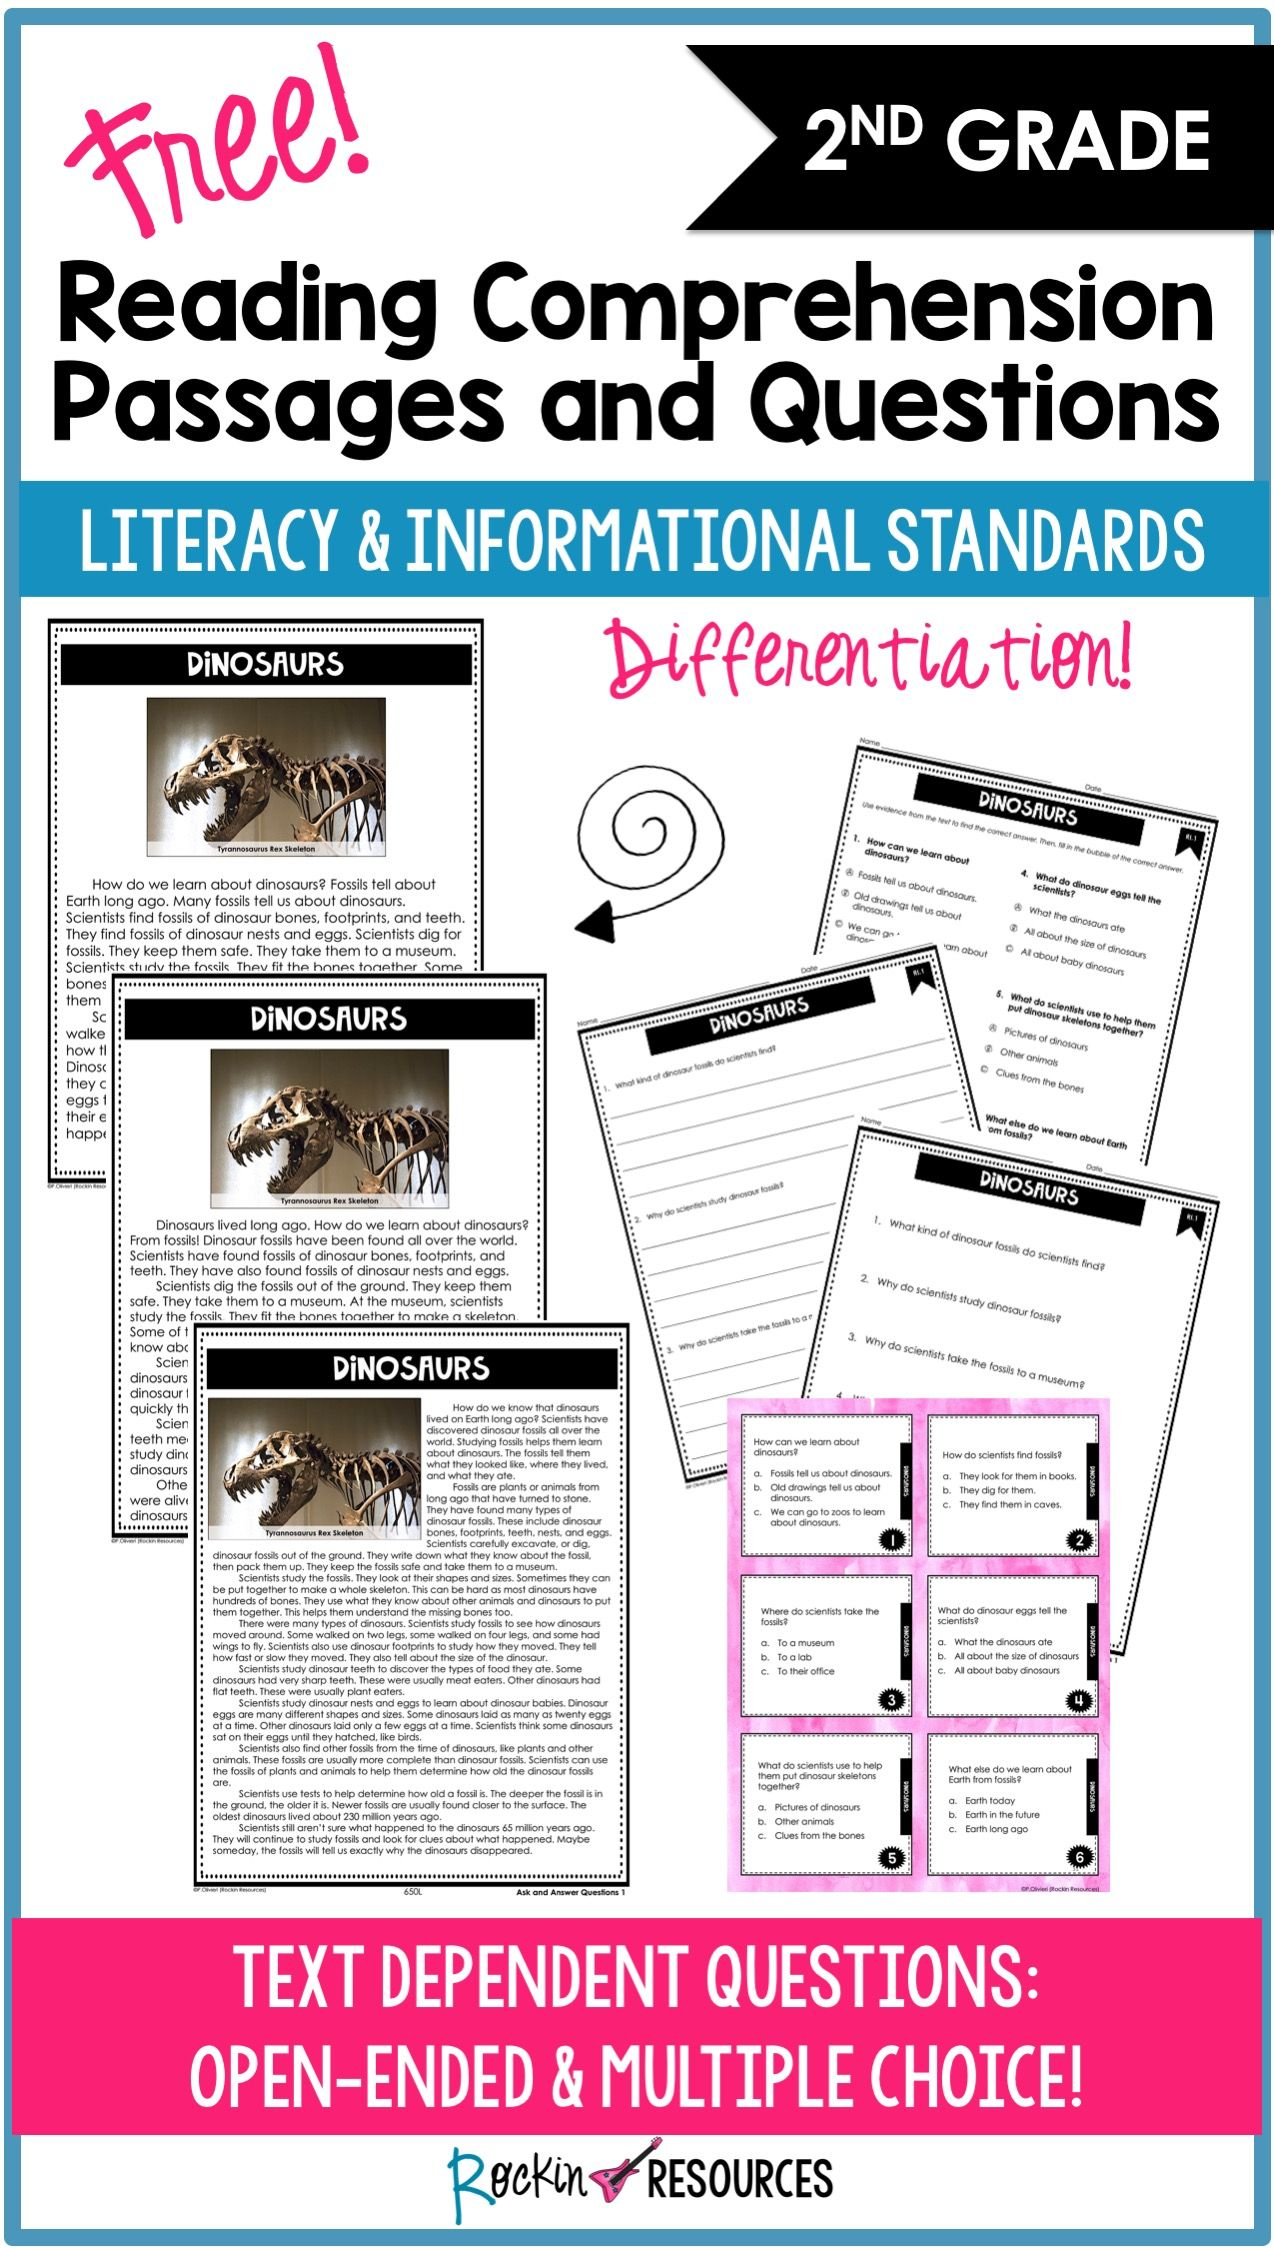 Reading Comprehension Passages Questions For 2nd Grade Free Distance Learning Reading Comprehension Passages Comprehension Passage Reading Comprehension [ 2249 x 1274 Pixel ]